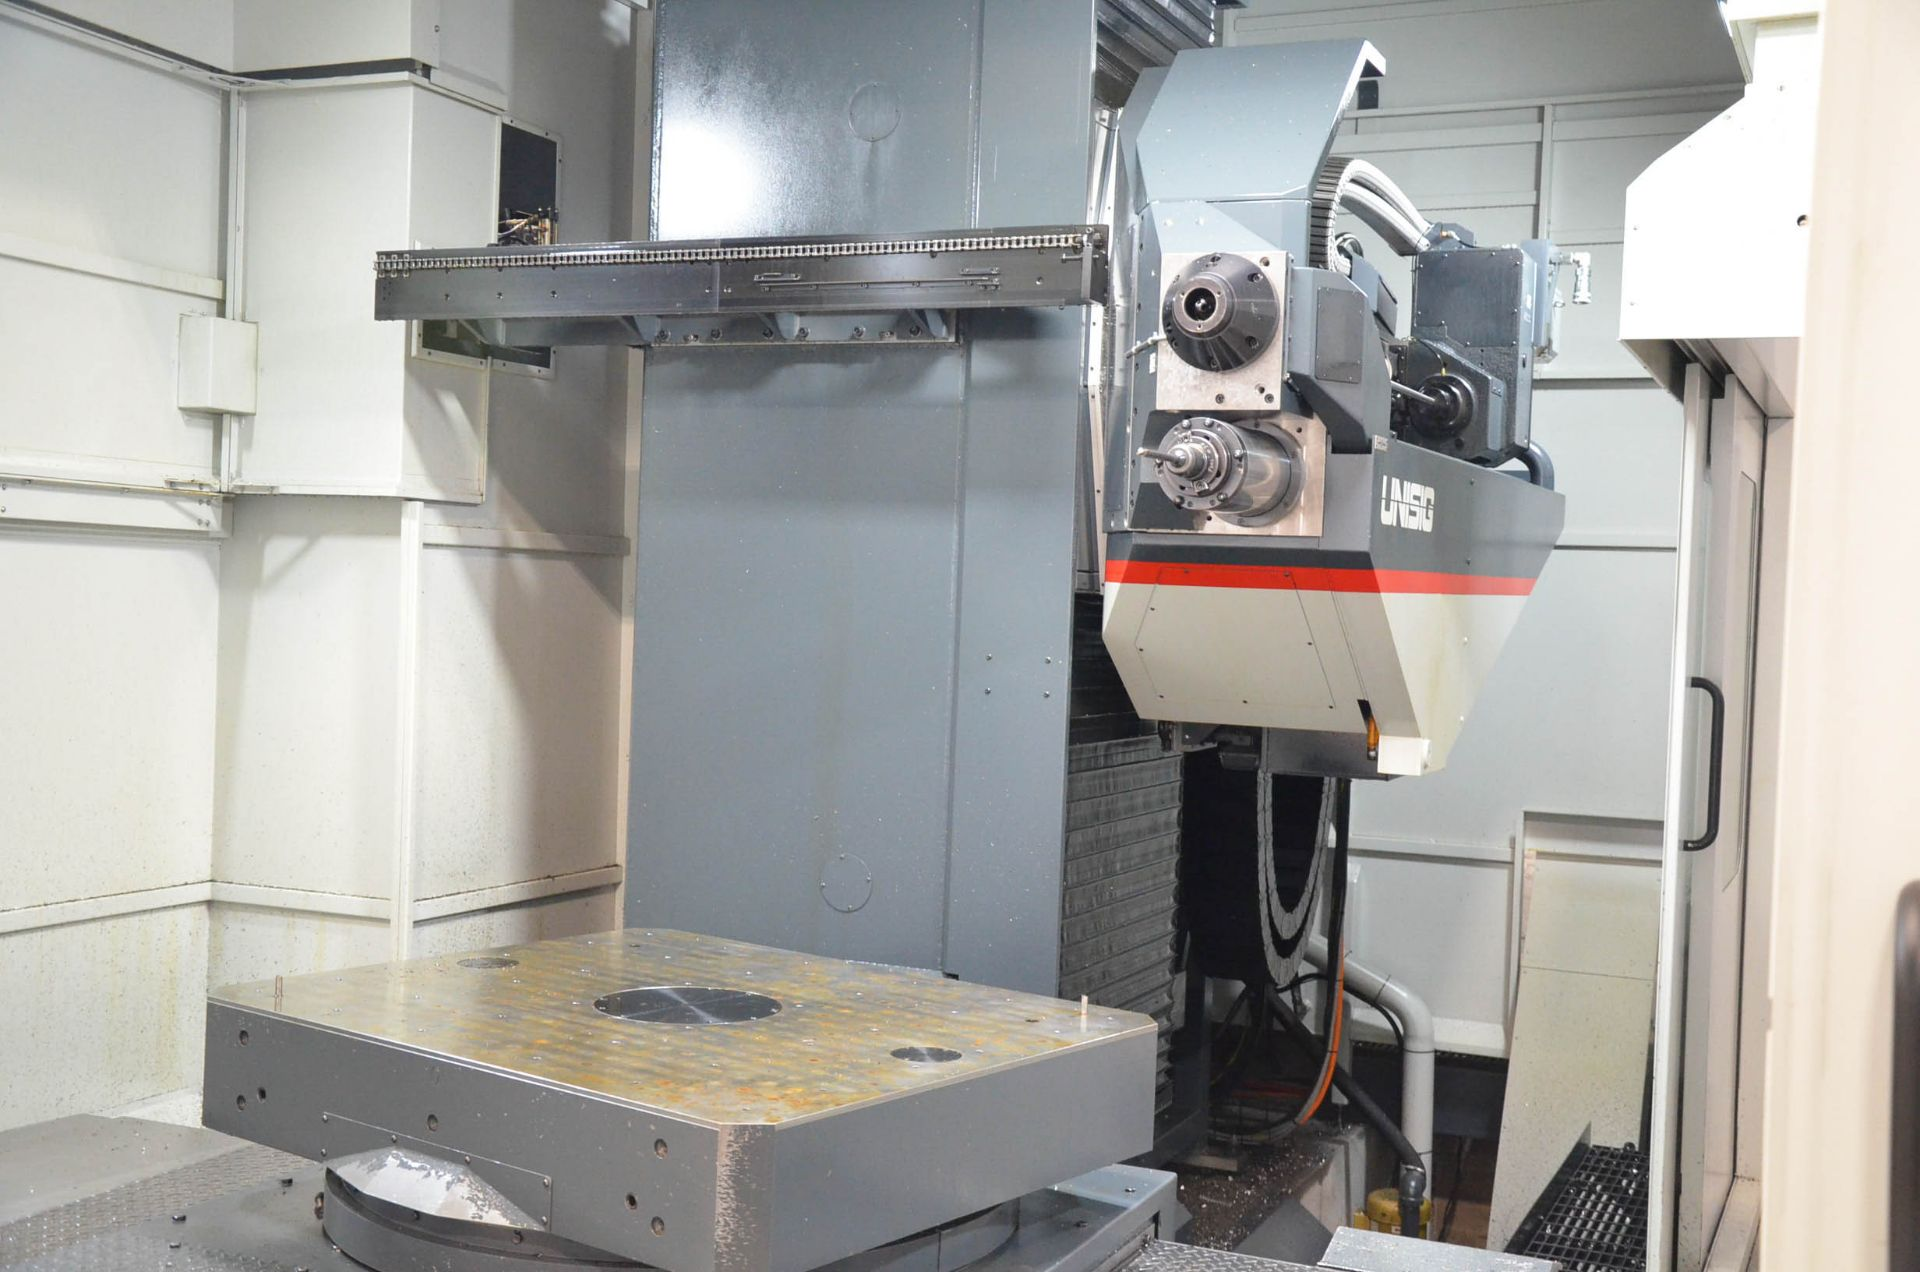 UNISIG (2020) USC-M38 5-AXIS COMBINATION CNC GUN DRILLING AND MILLING MACHINE WITH HEIDENHAIN ITNC - Image 10 of 17